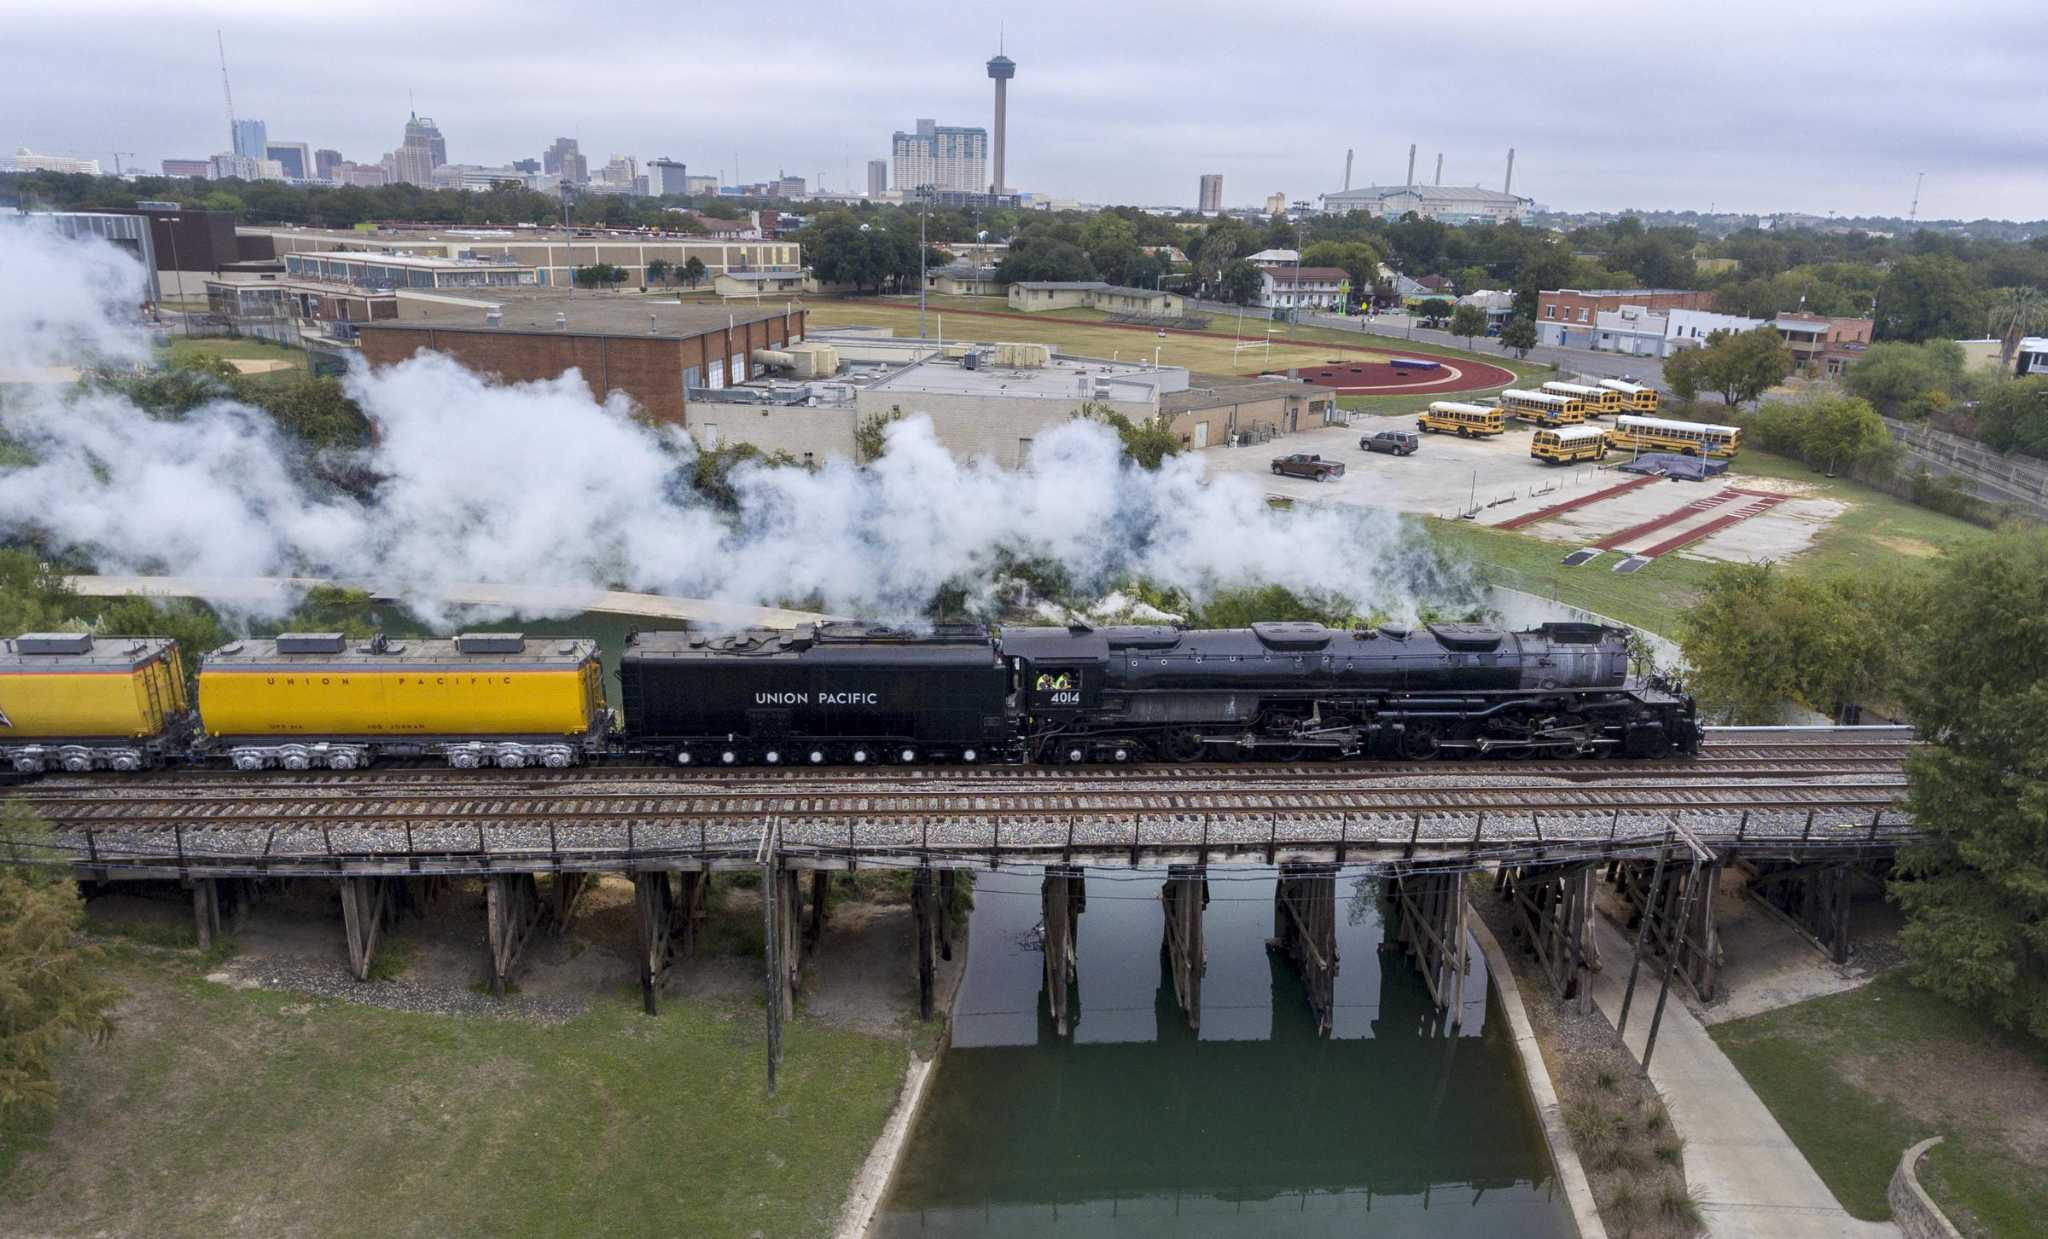 Big Boy headed for Houston as world's largest steam train chuffs through anniversary tour